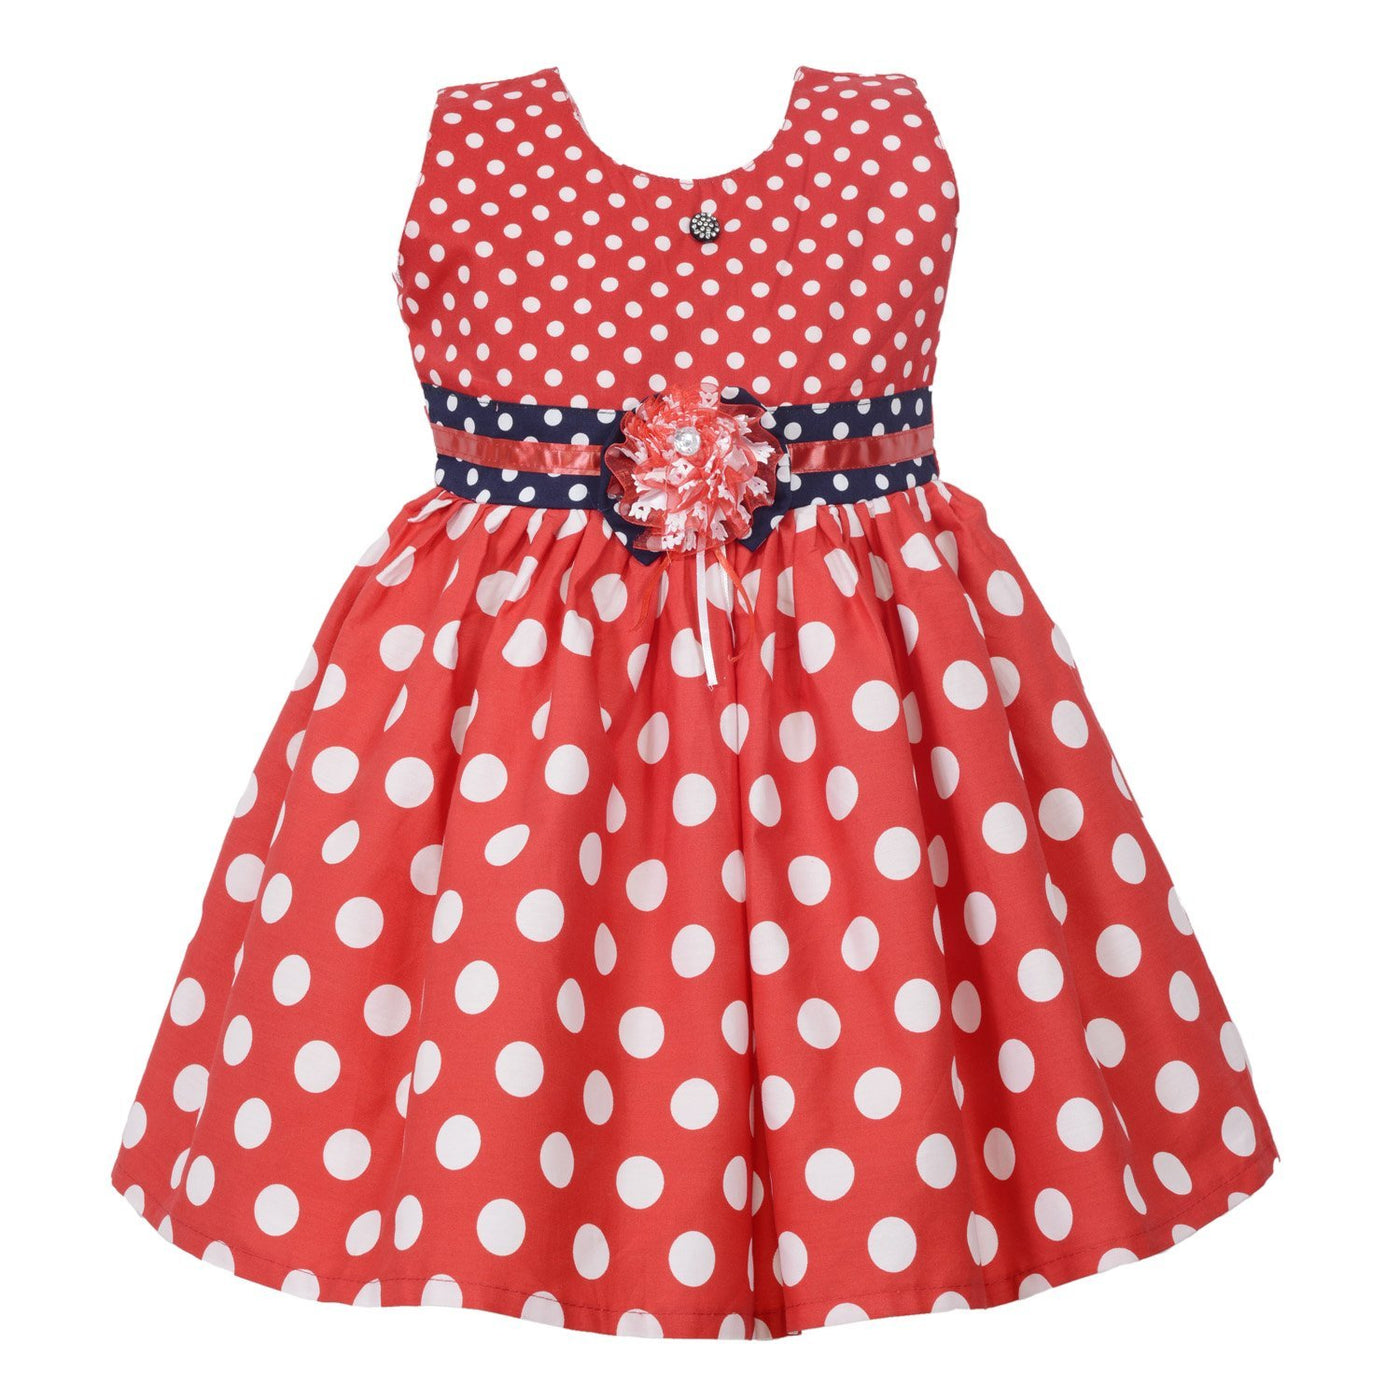 Baby Girls Dress ctn257rd – Wish Karo